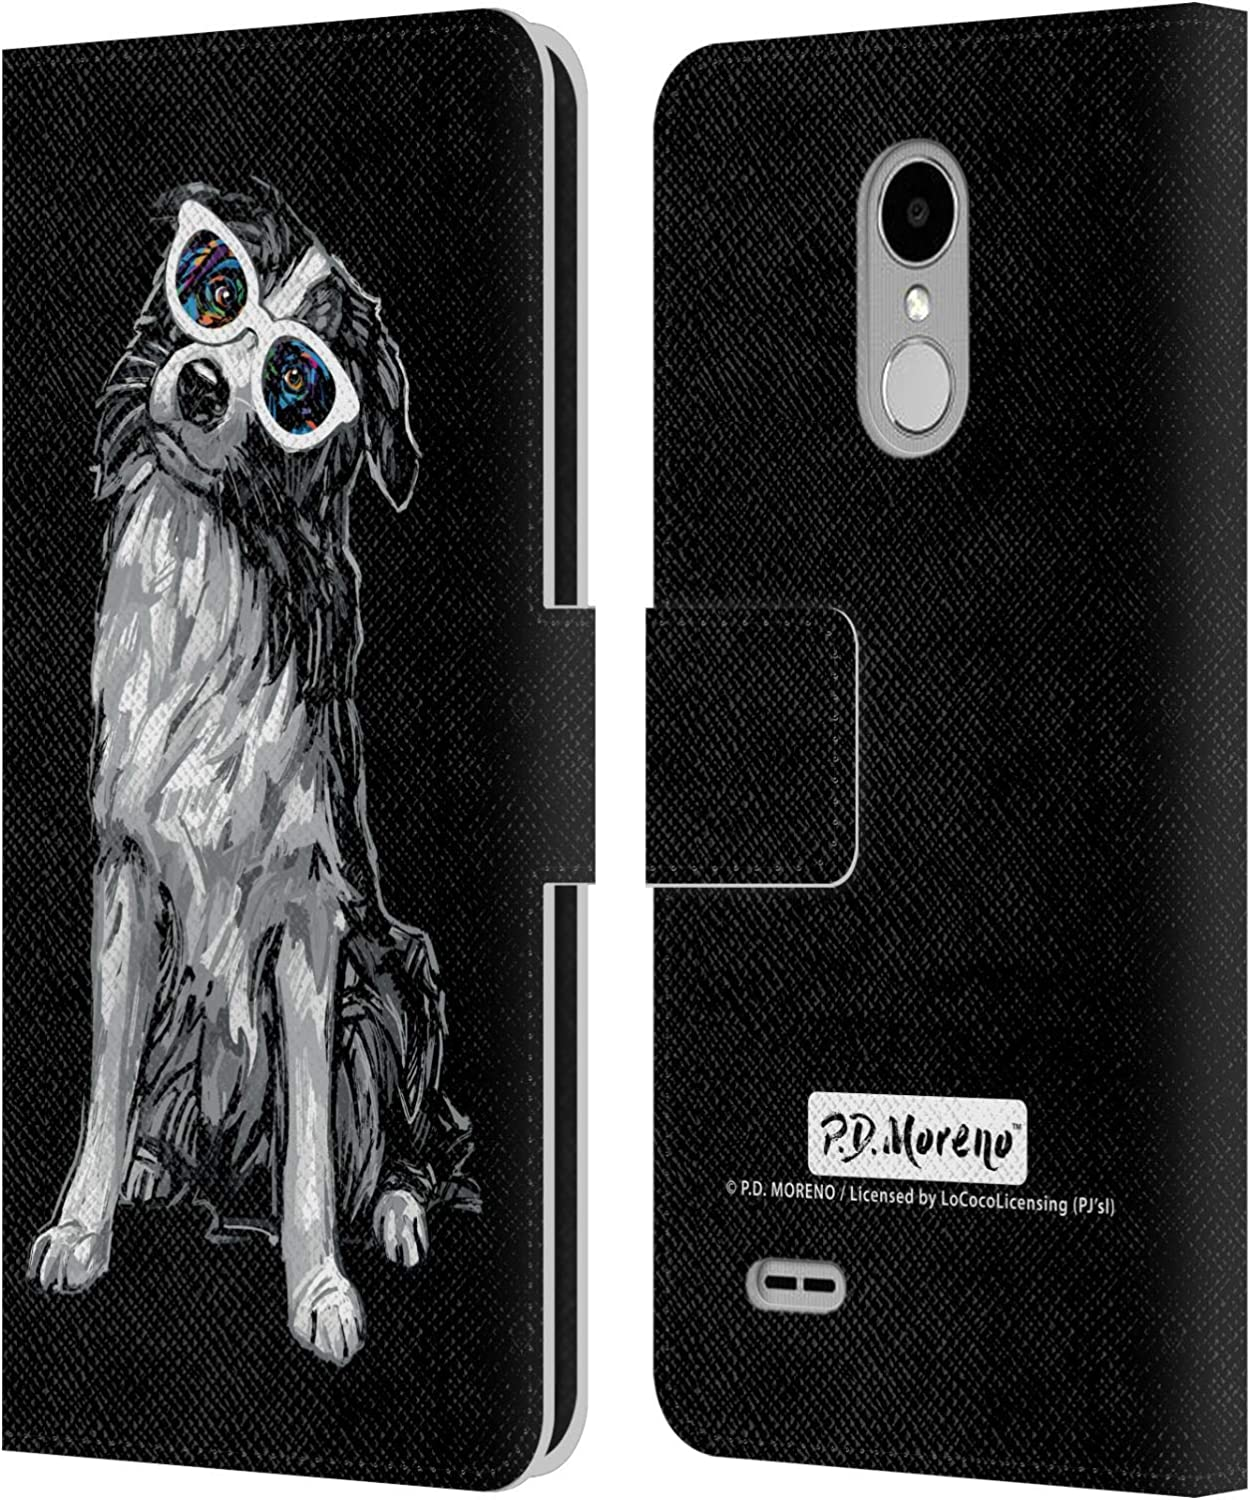 Official P.D. Moreno Border Collie Black and White Dogs Leather Book Wallet Case Cover Compatible for LG Stylus 3 / K10 Pro